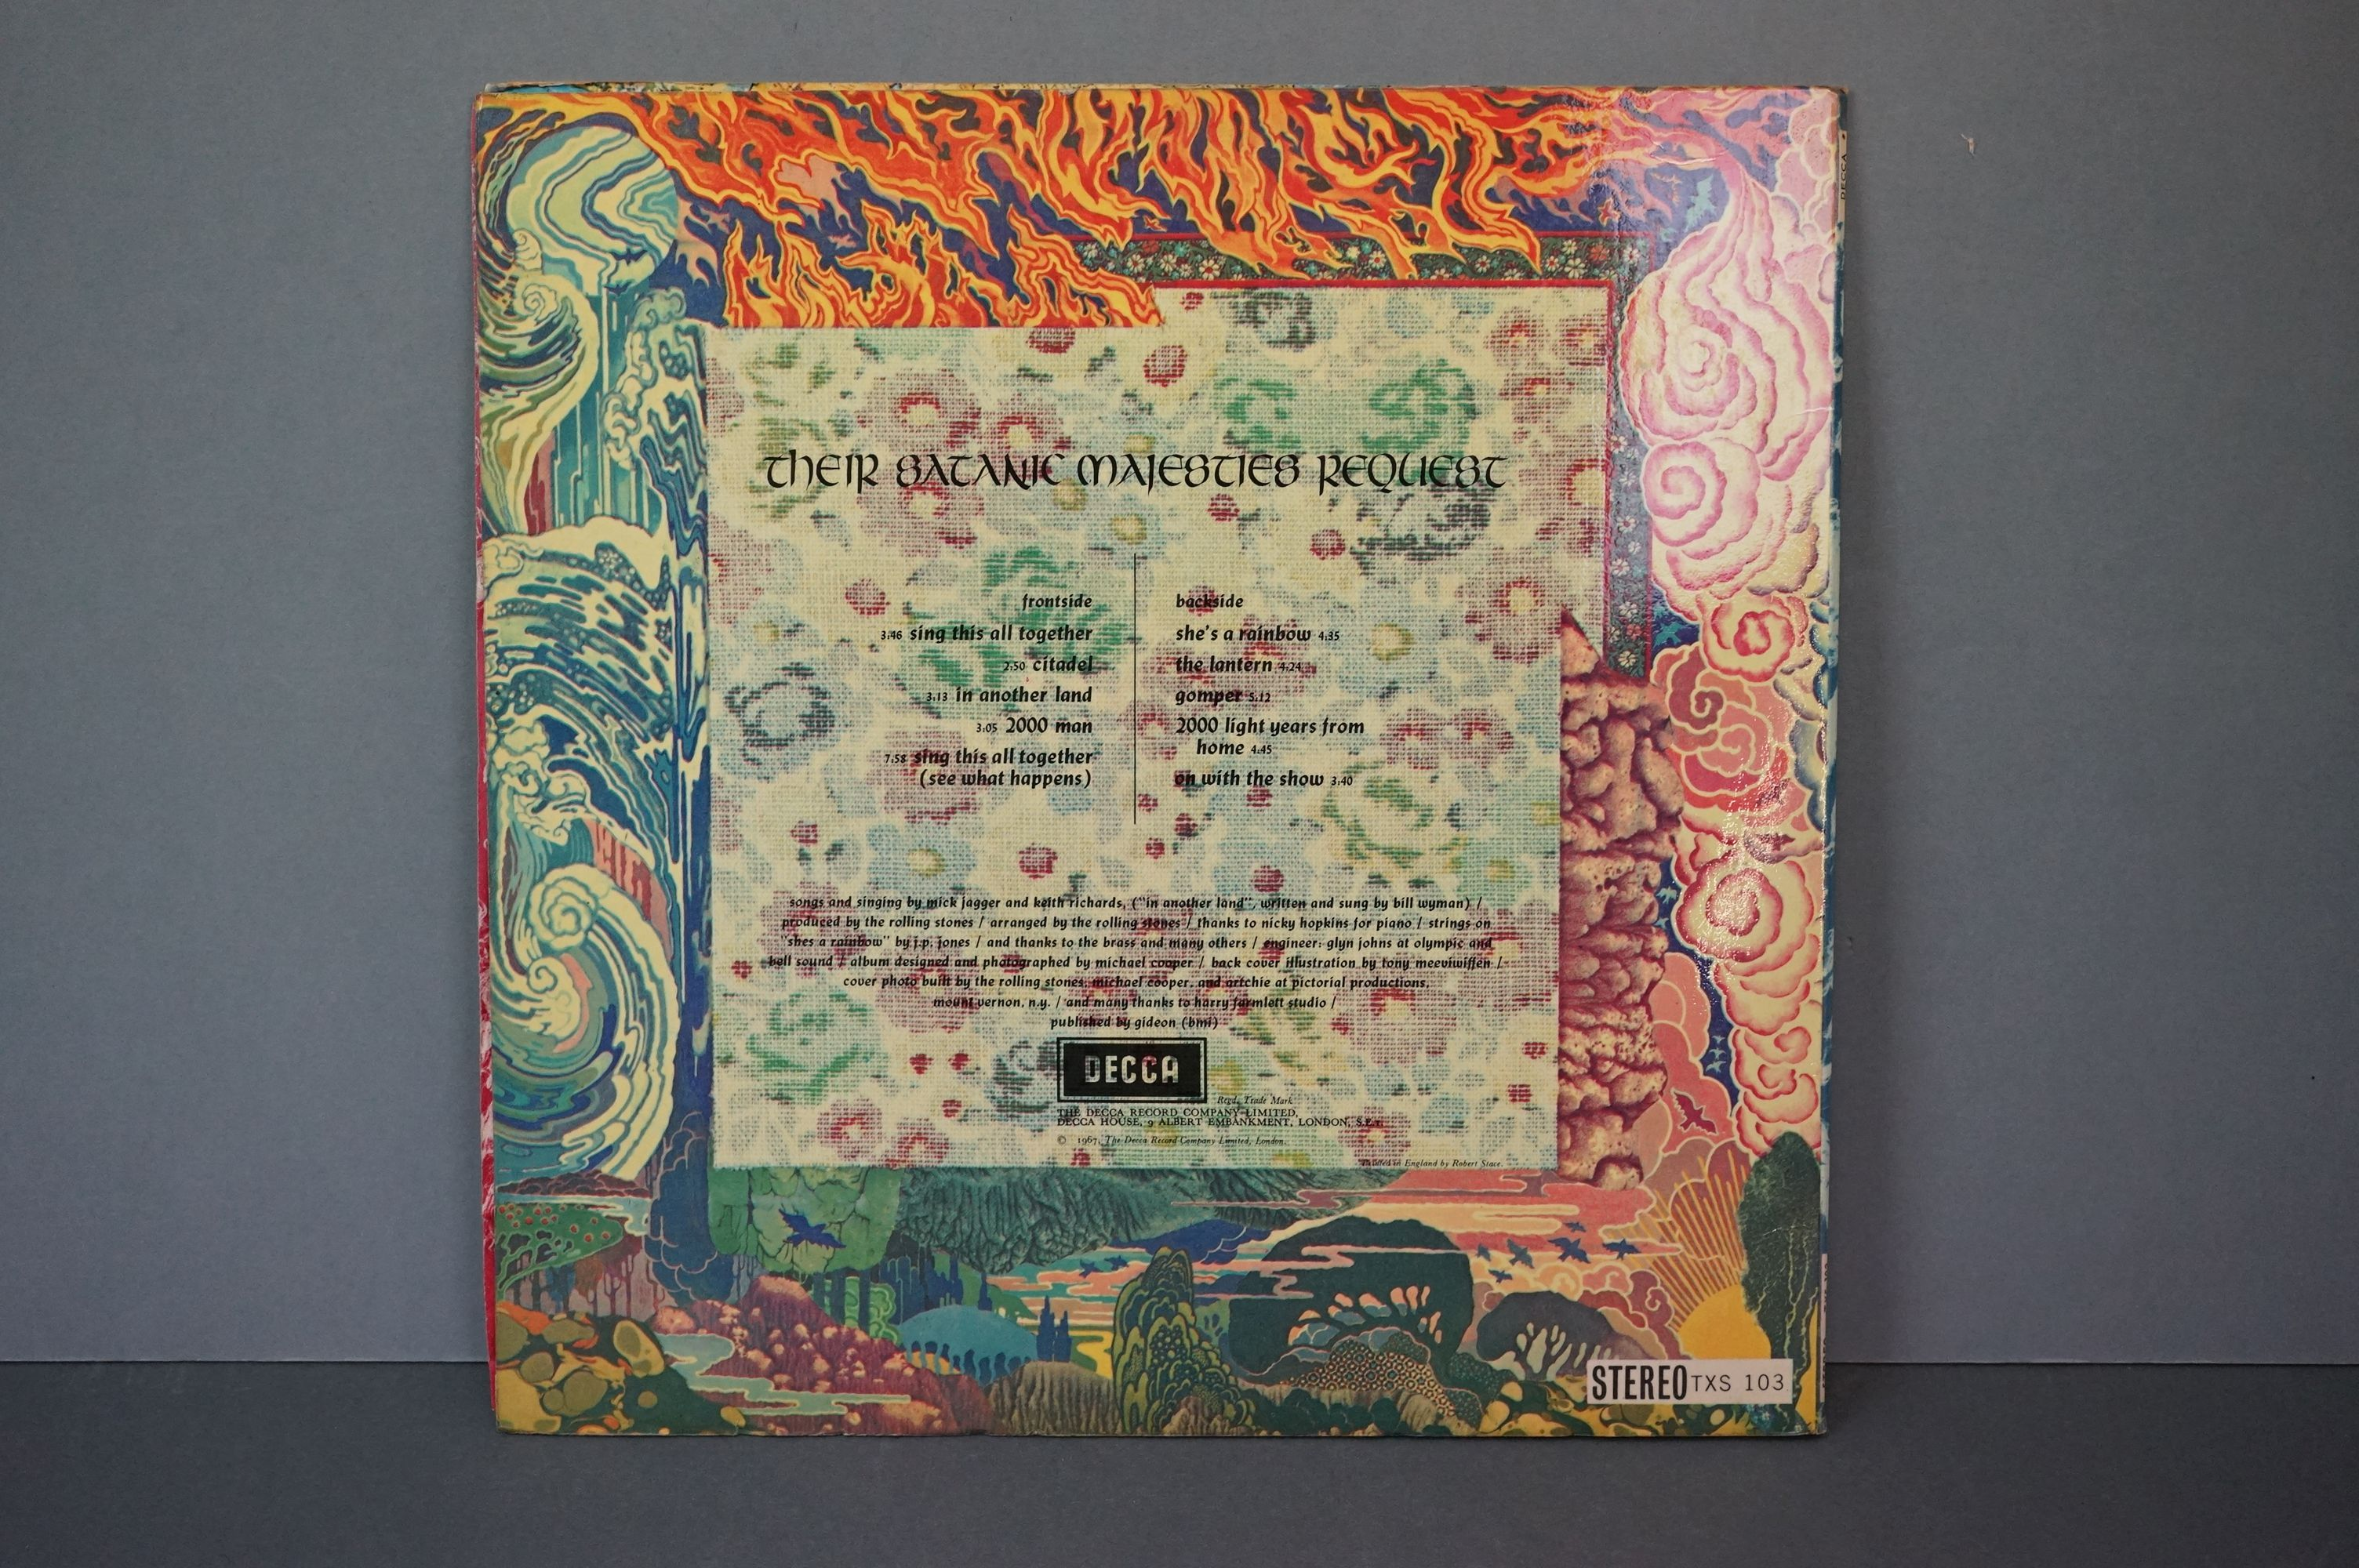 Vinyl - The Rolling Stones Their Satanic Majesties Request TXS103, Decca unboxed green stereo label, - Image 6 of 7